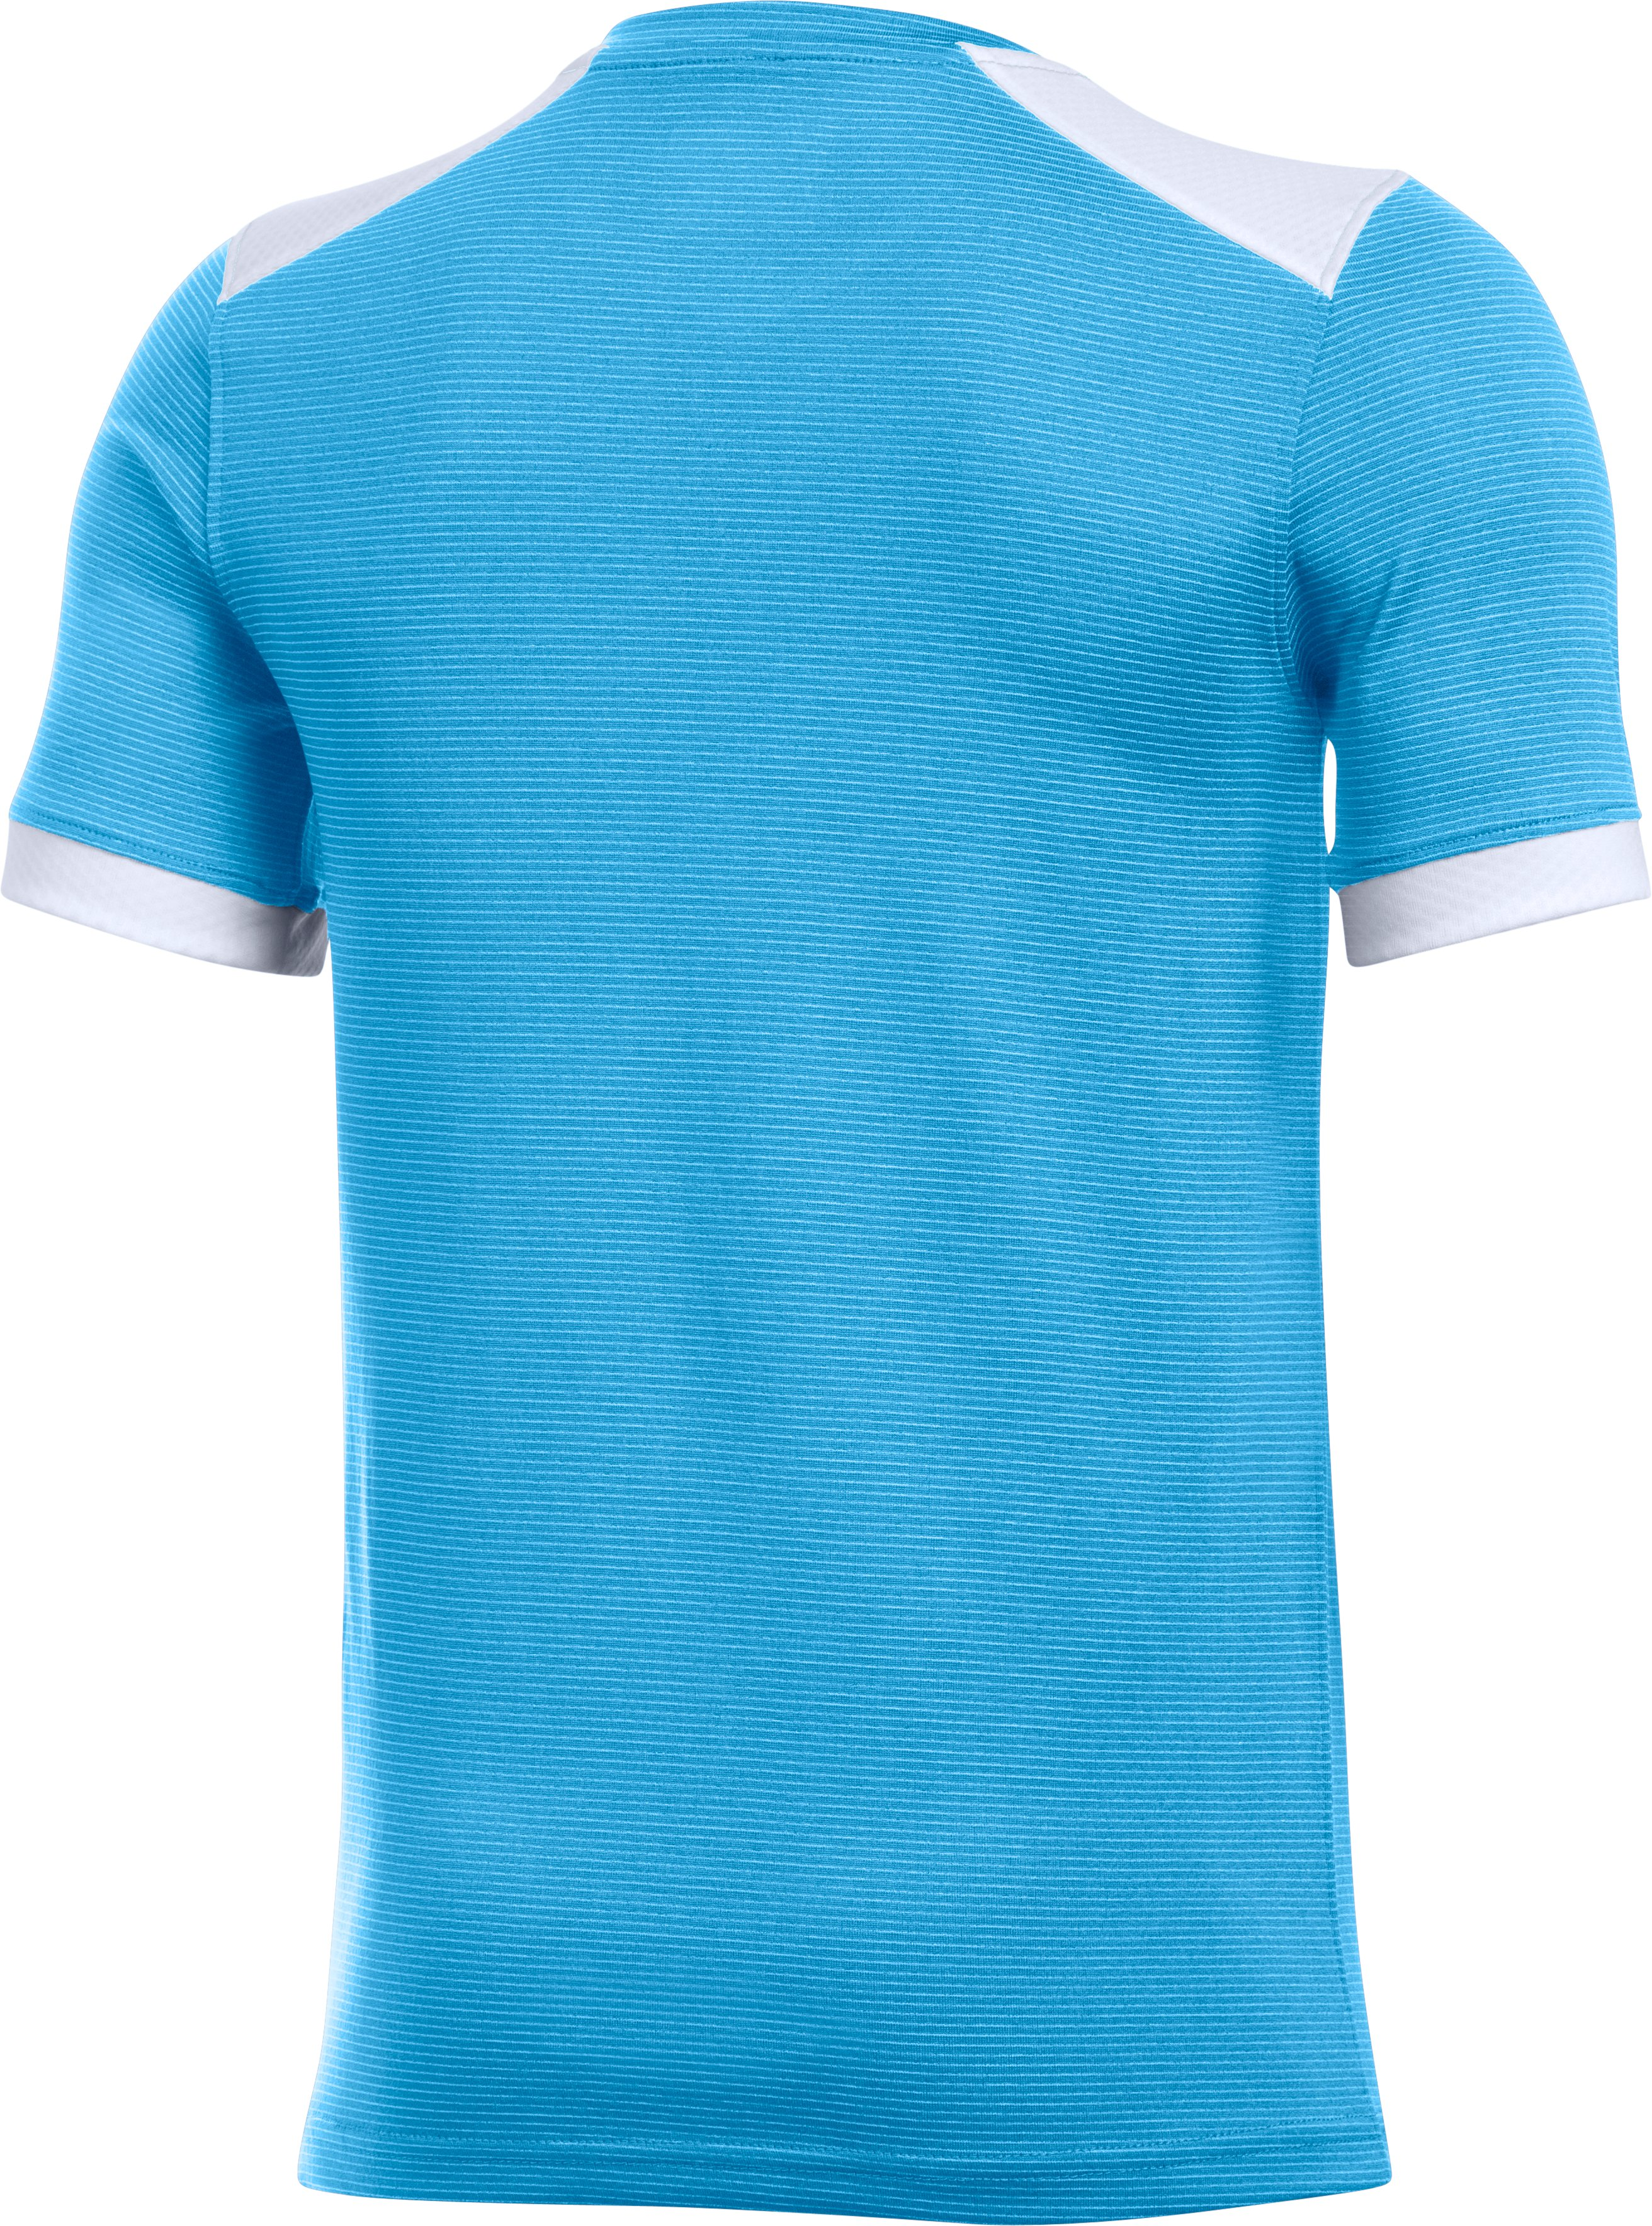 Kids' UA Threadborne Match Jersey, Carolina Blue, undefined